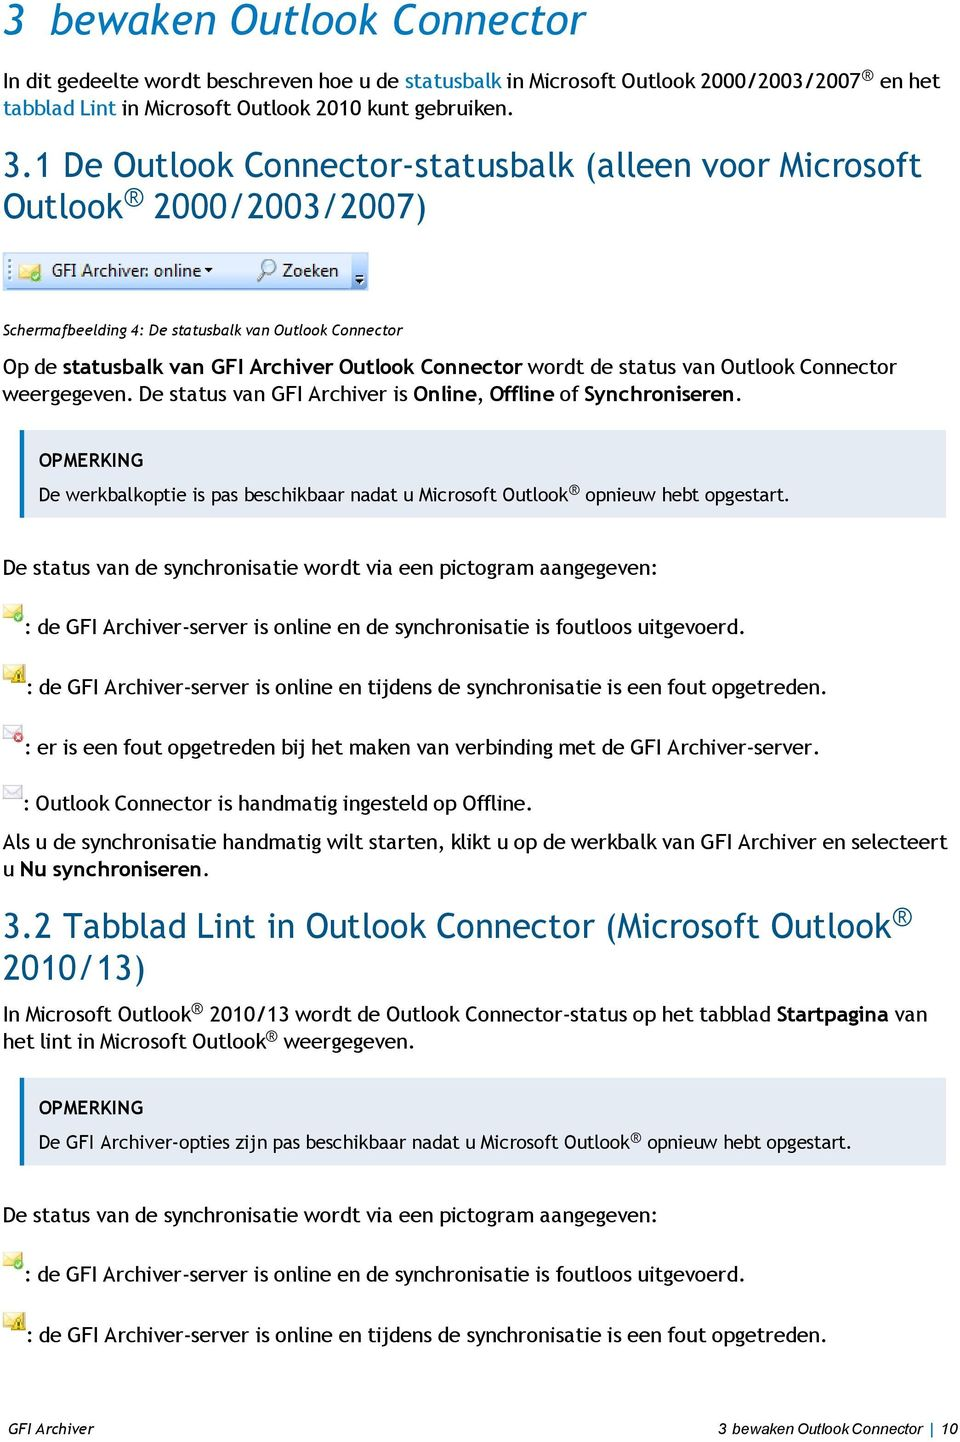 status van Outlook Connector weergegeven. De status van GFI Archiver is Online, Offline of Synchroniseren.